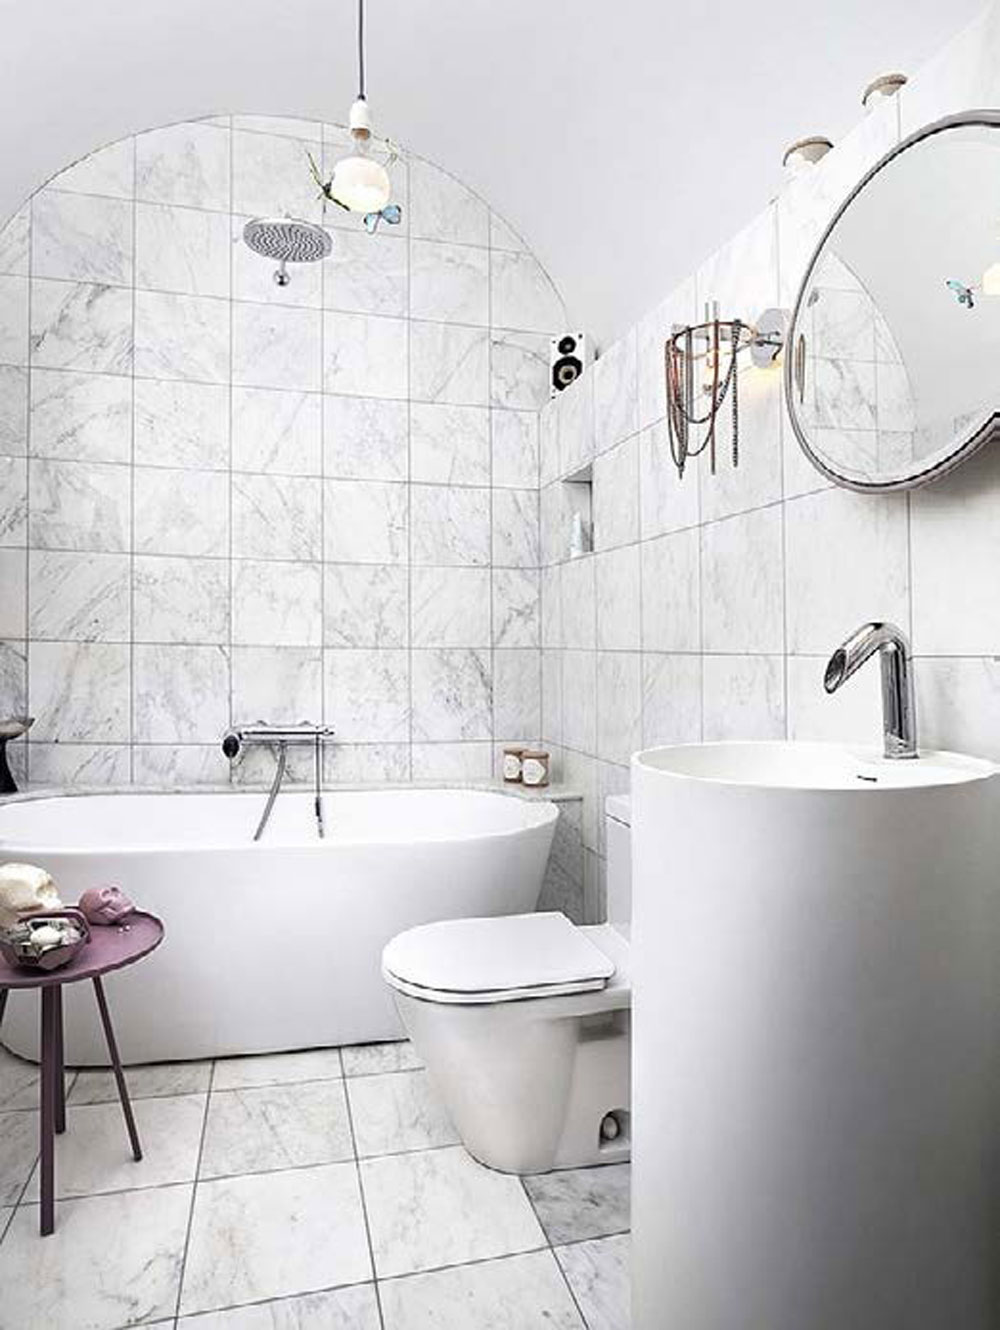 Designing-a-small-bathroom-ideas-and-tips-7 Designing-a-small-bathroom - ideas and tips